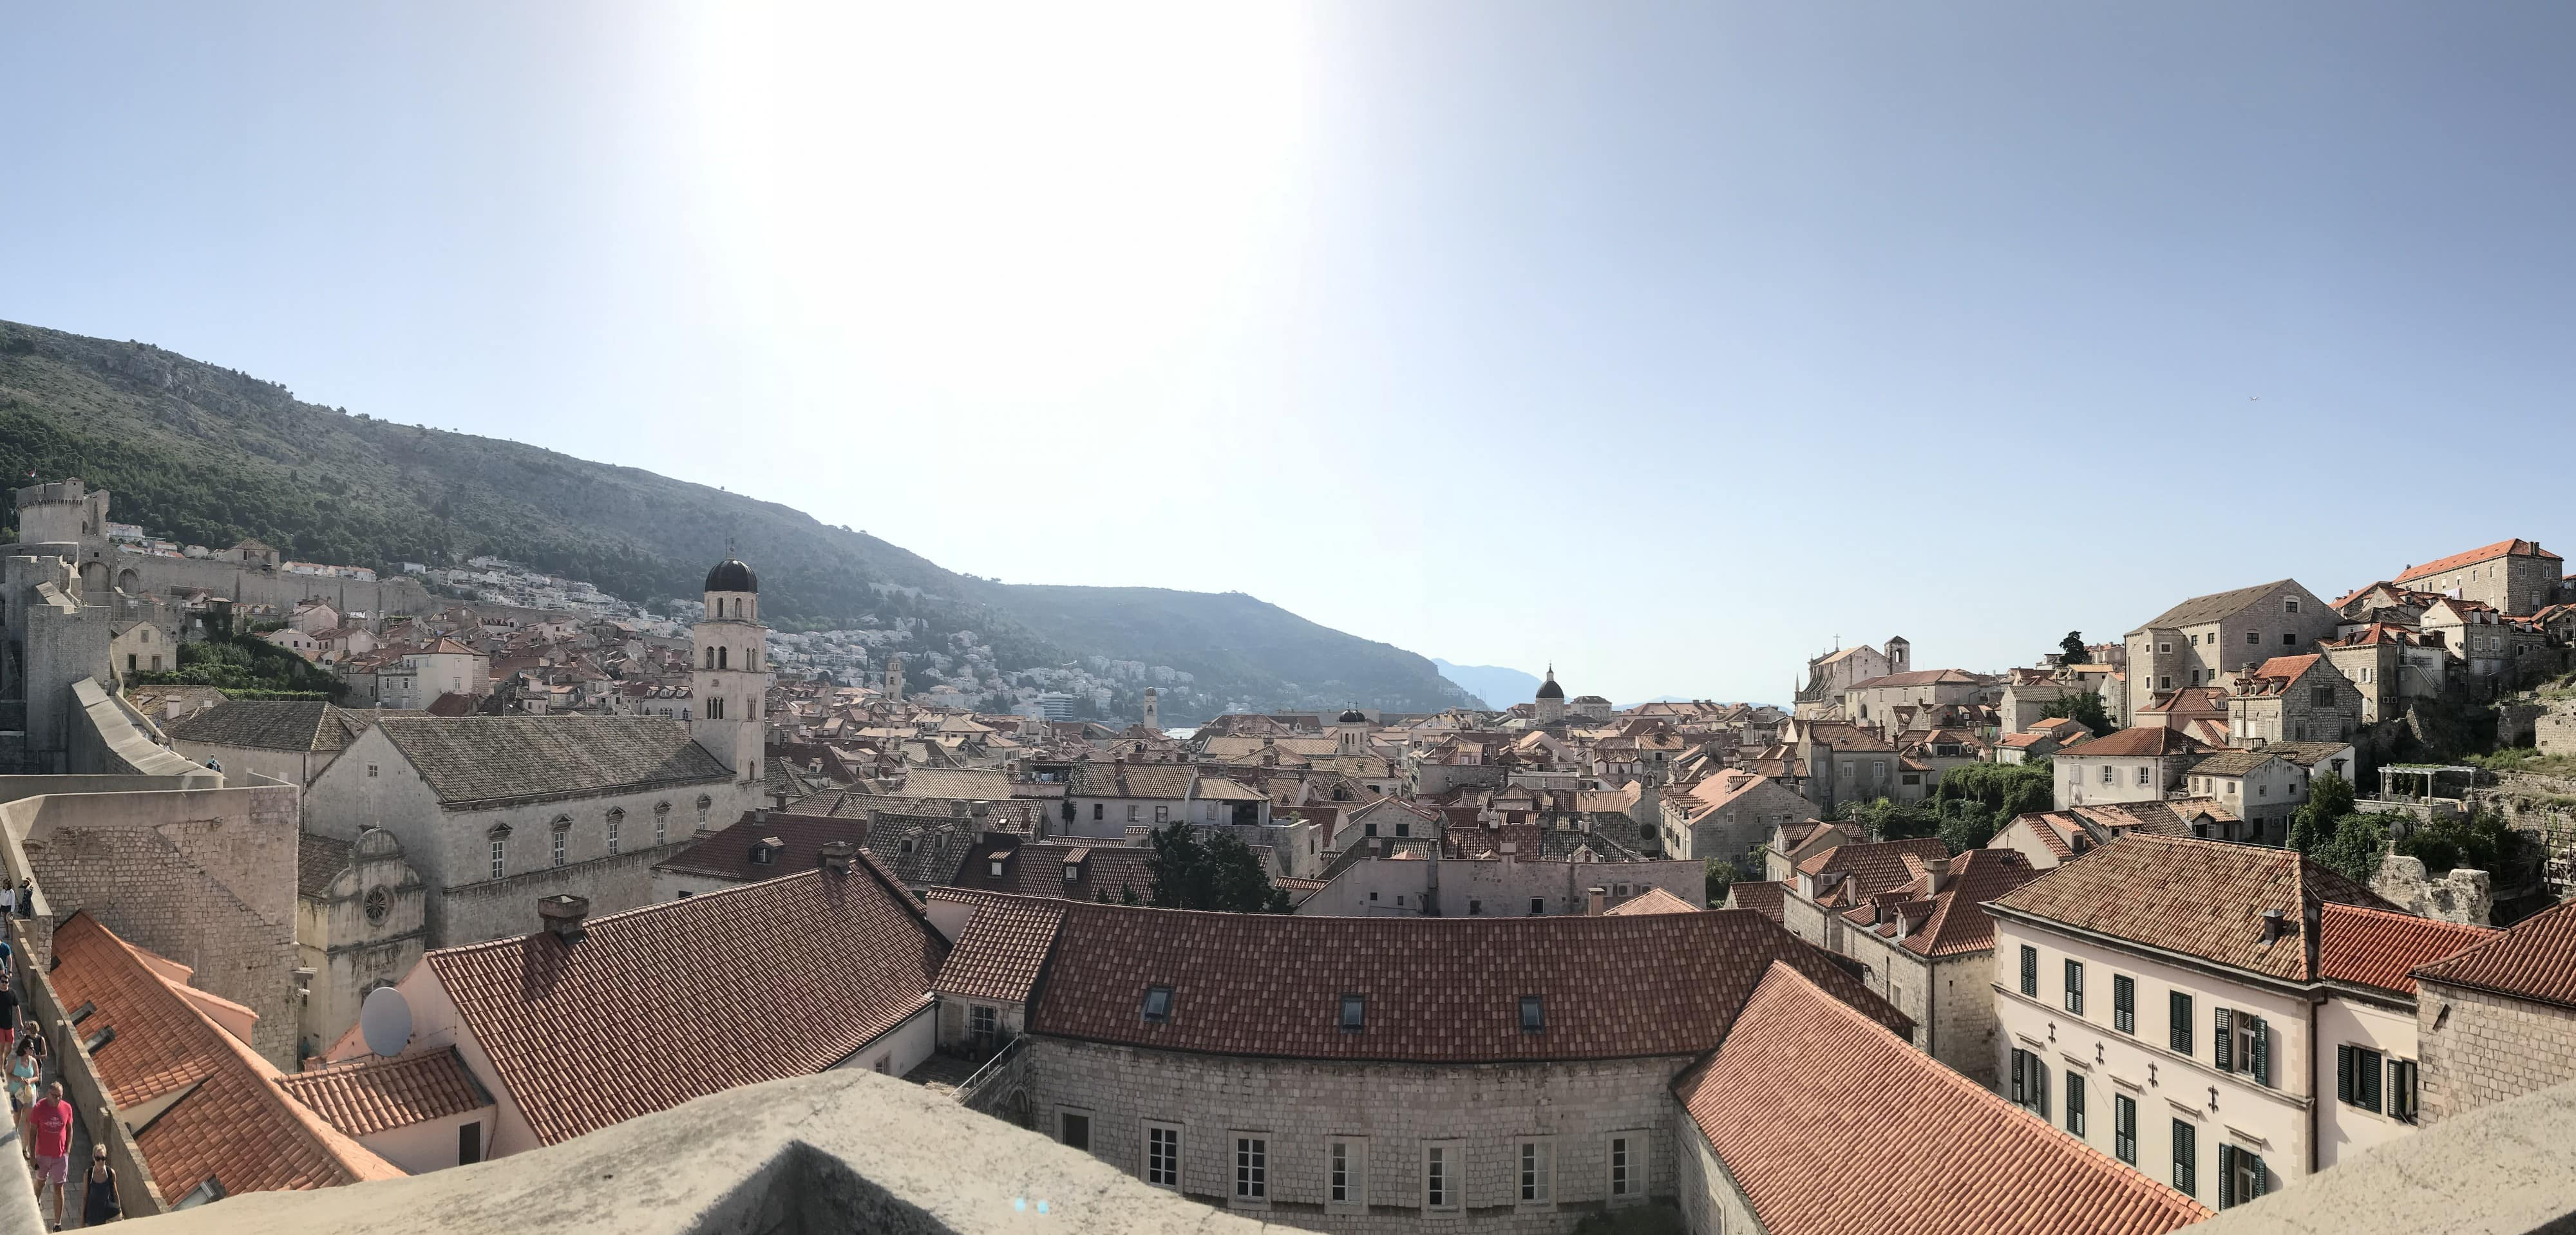 Travel Diary: A European Grad Trip